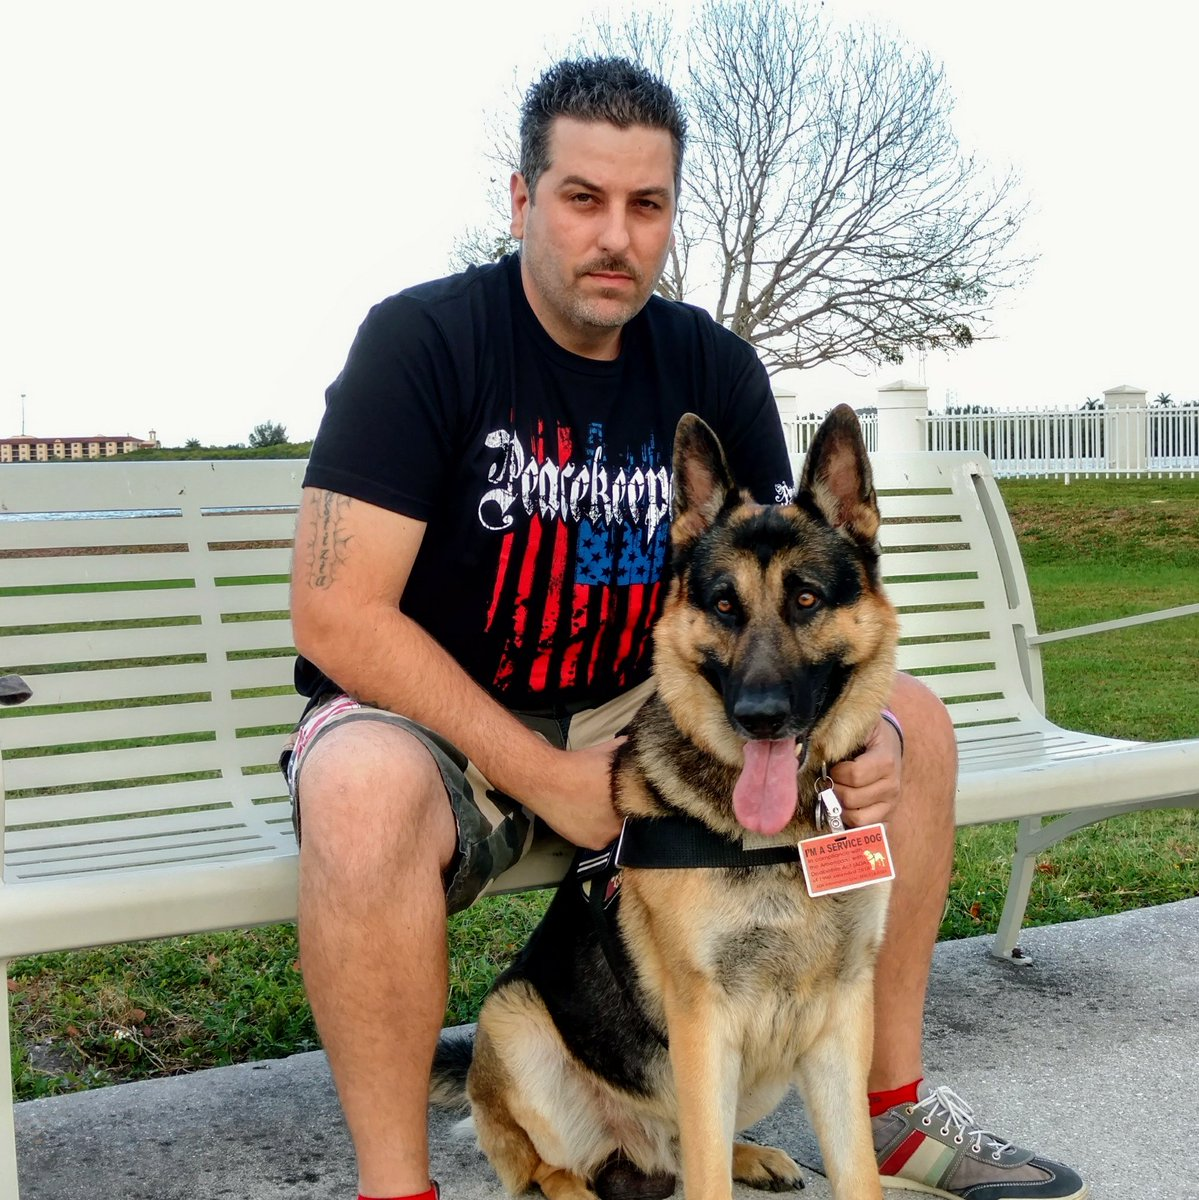 Great shirt for the 4th of July! And to help @JosephLocus &amp; Jinky! #BlueLivesMatter #PTSDAwarenessMonth  #painvsguilt<br>http://pic.twitter.com/bSvy4nuLNw